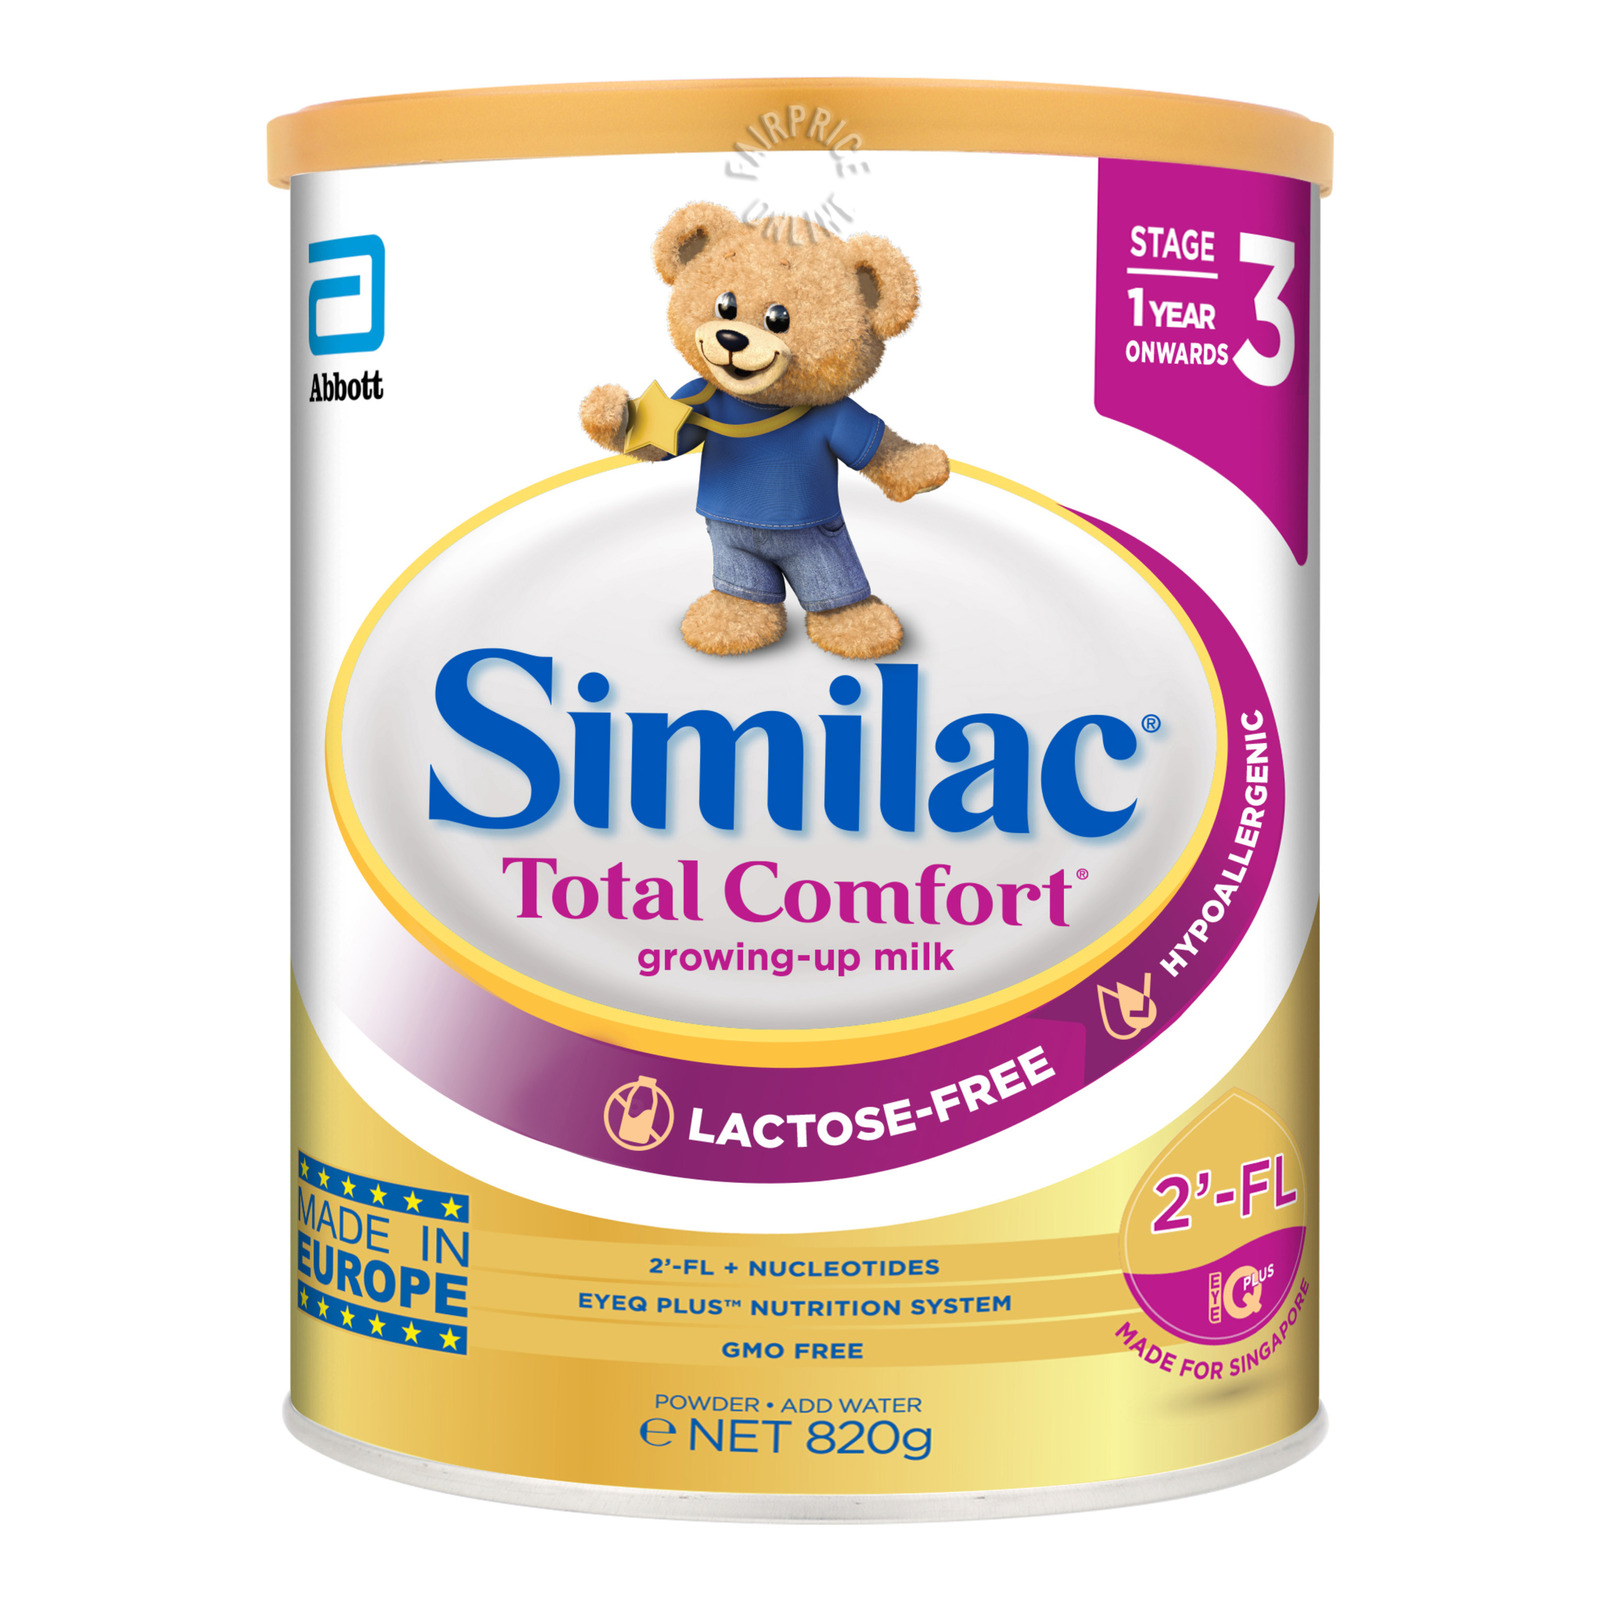 Abbott Similac Total Comfort Growing Up Milk Formula - Stage 3